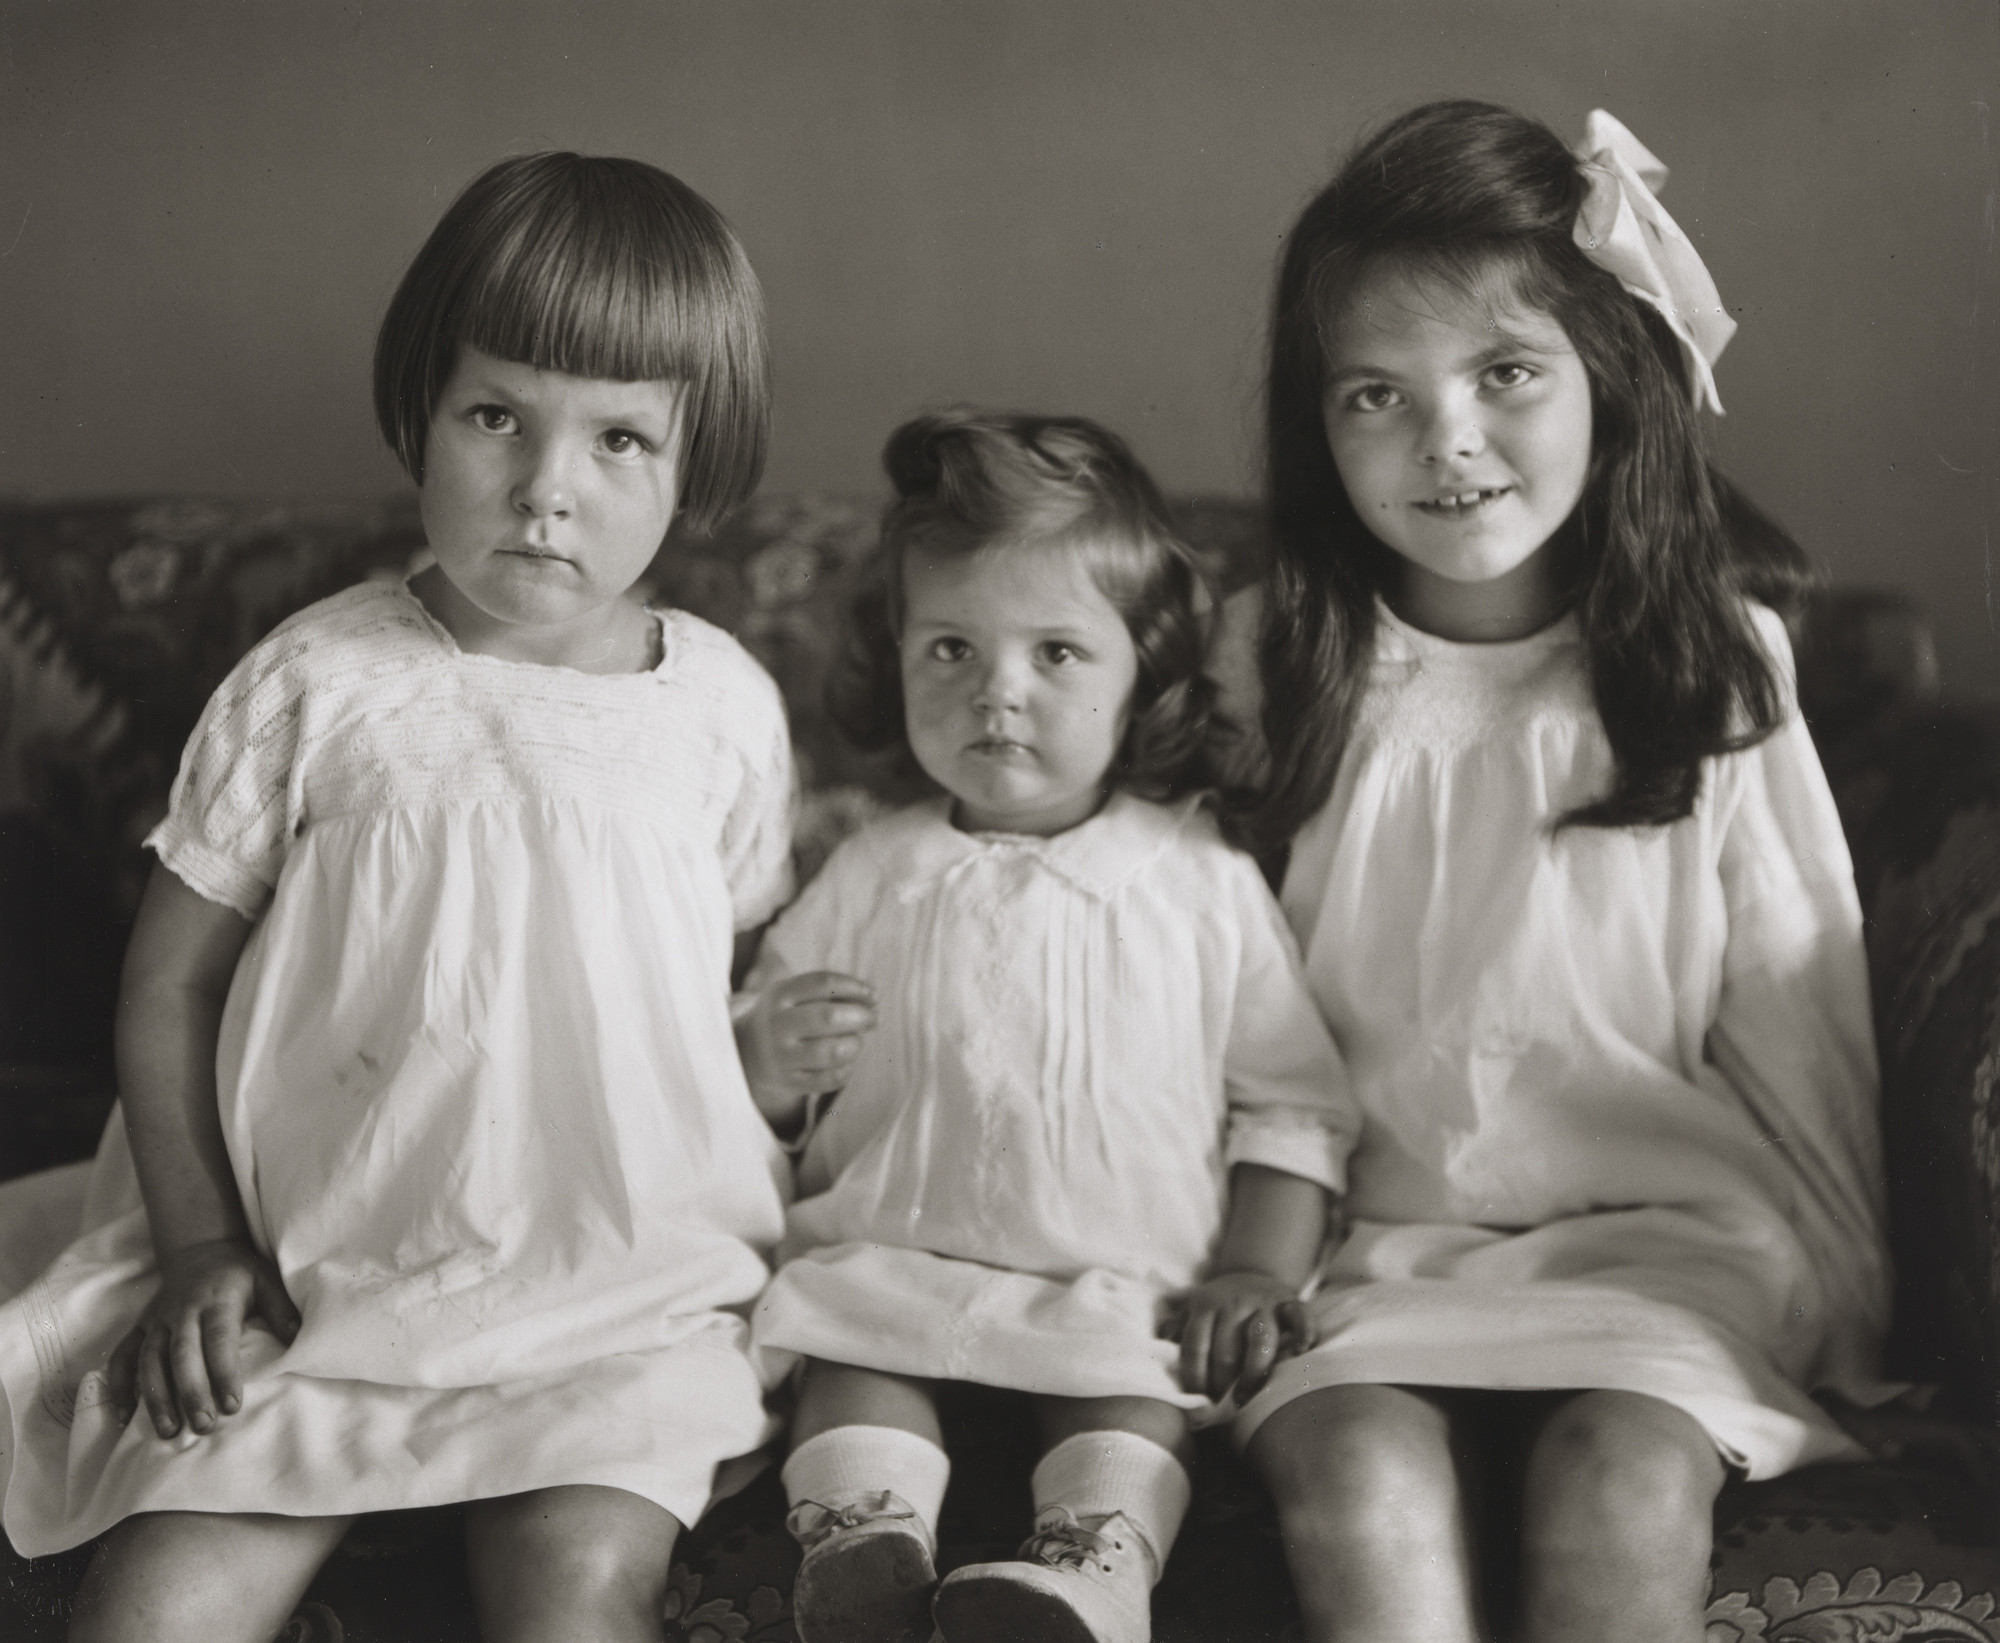 August Sander. Aristocratic Children. c. 1920